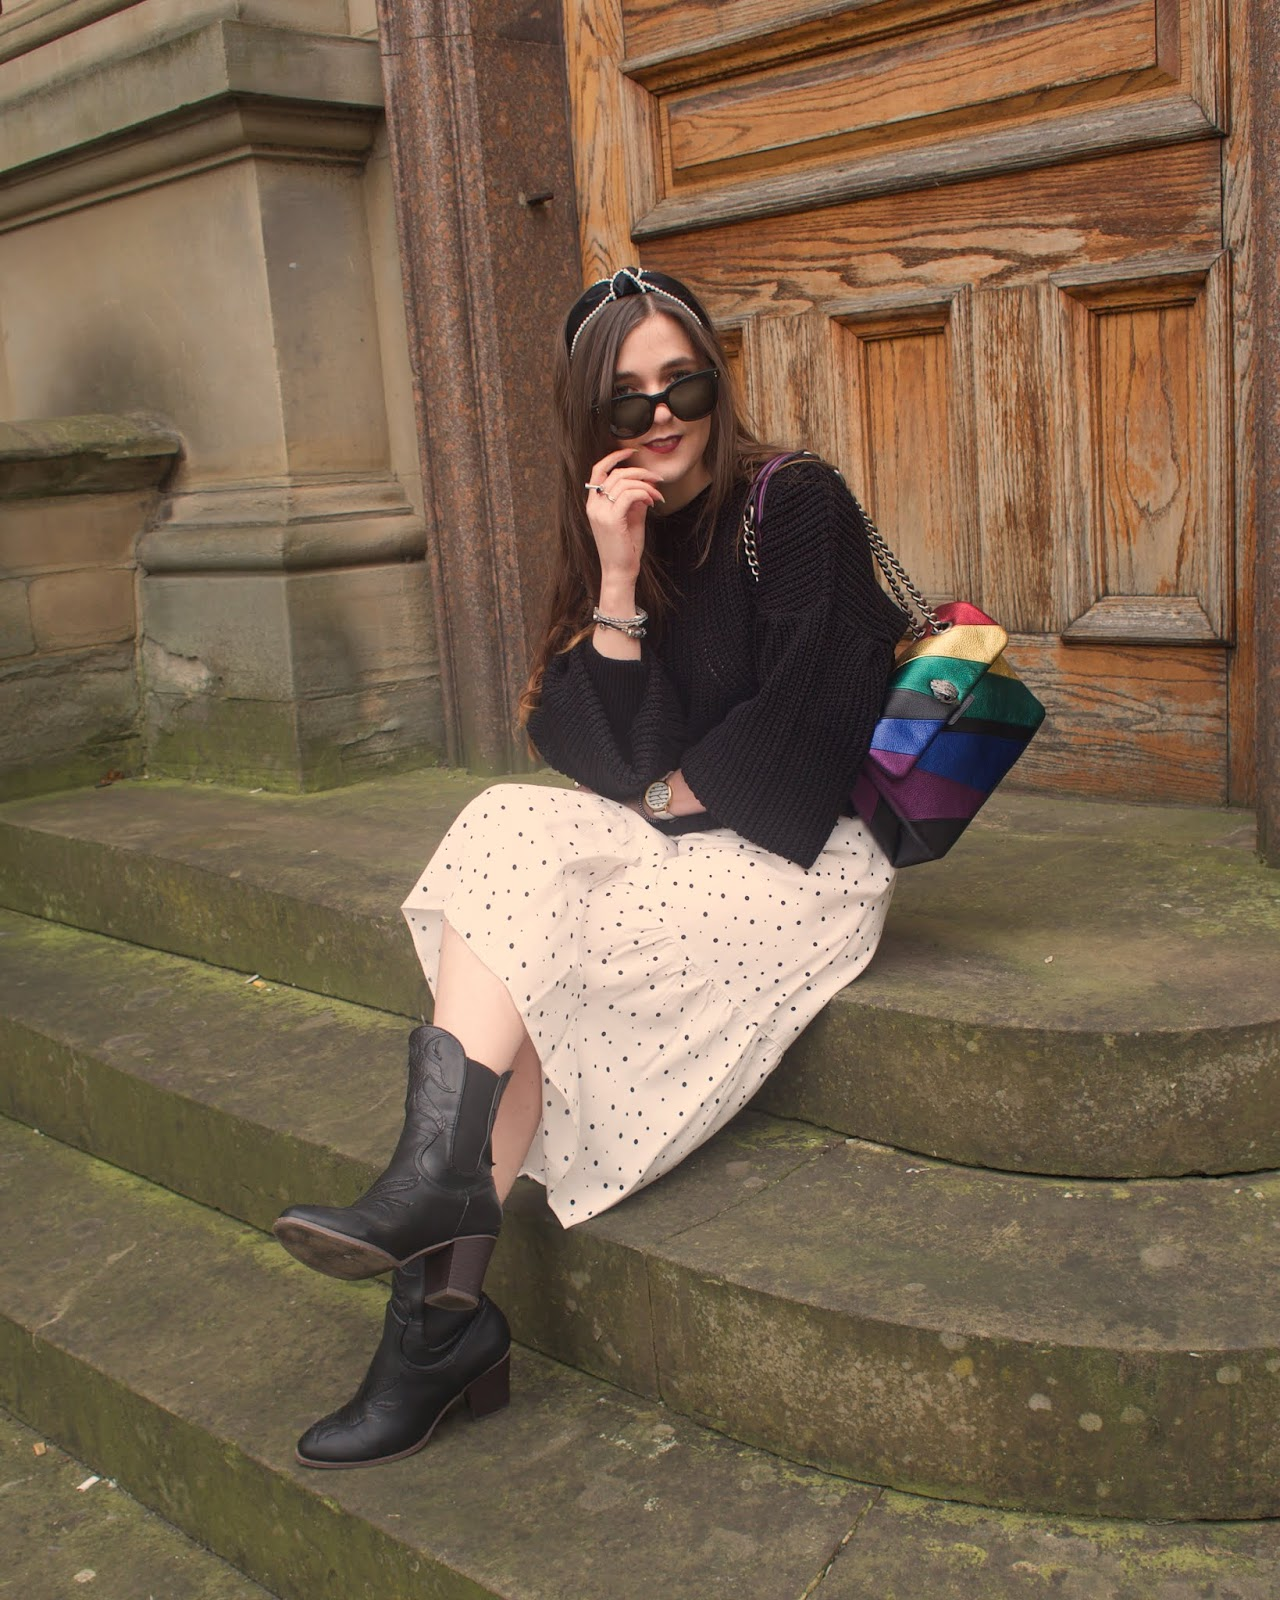 rainbow kurt geiger bag